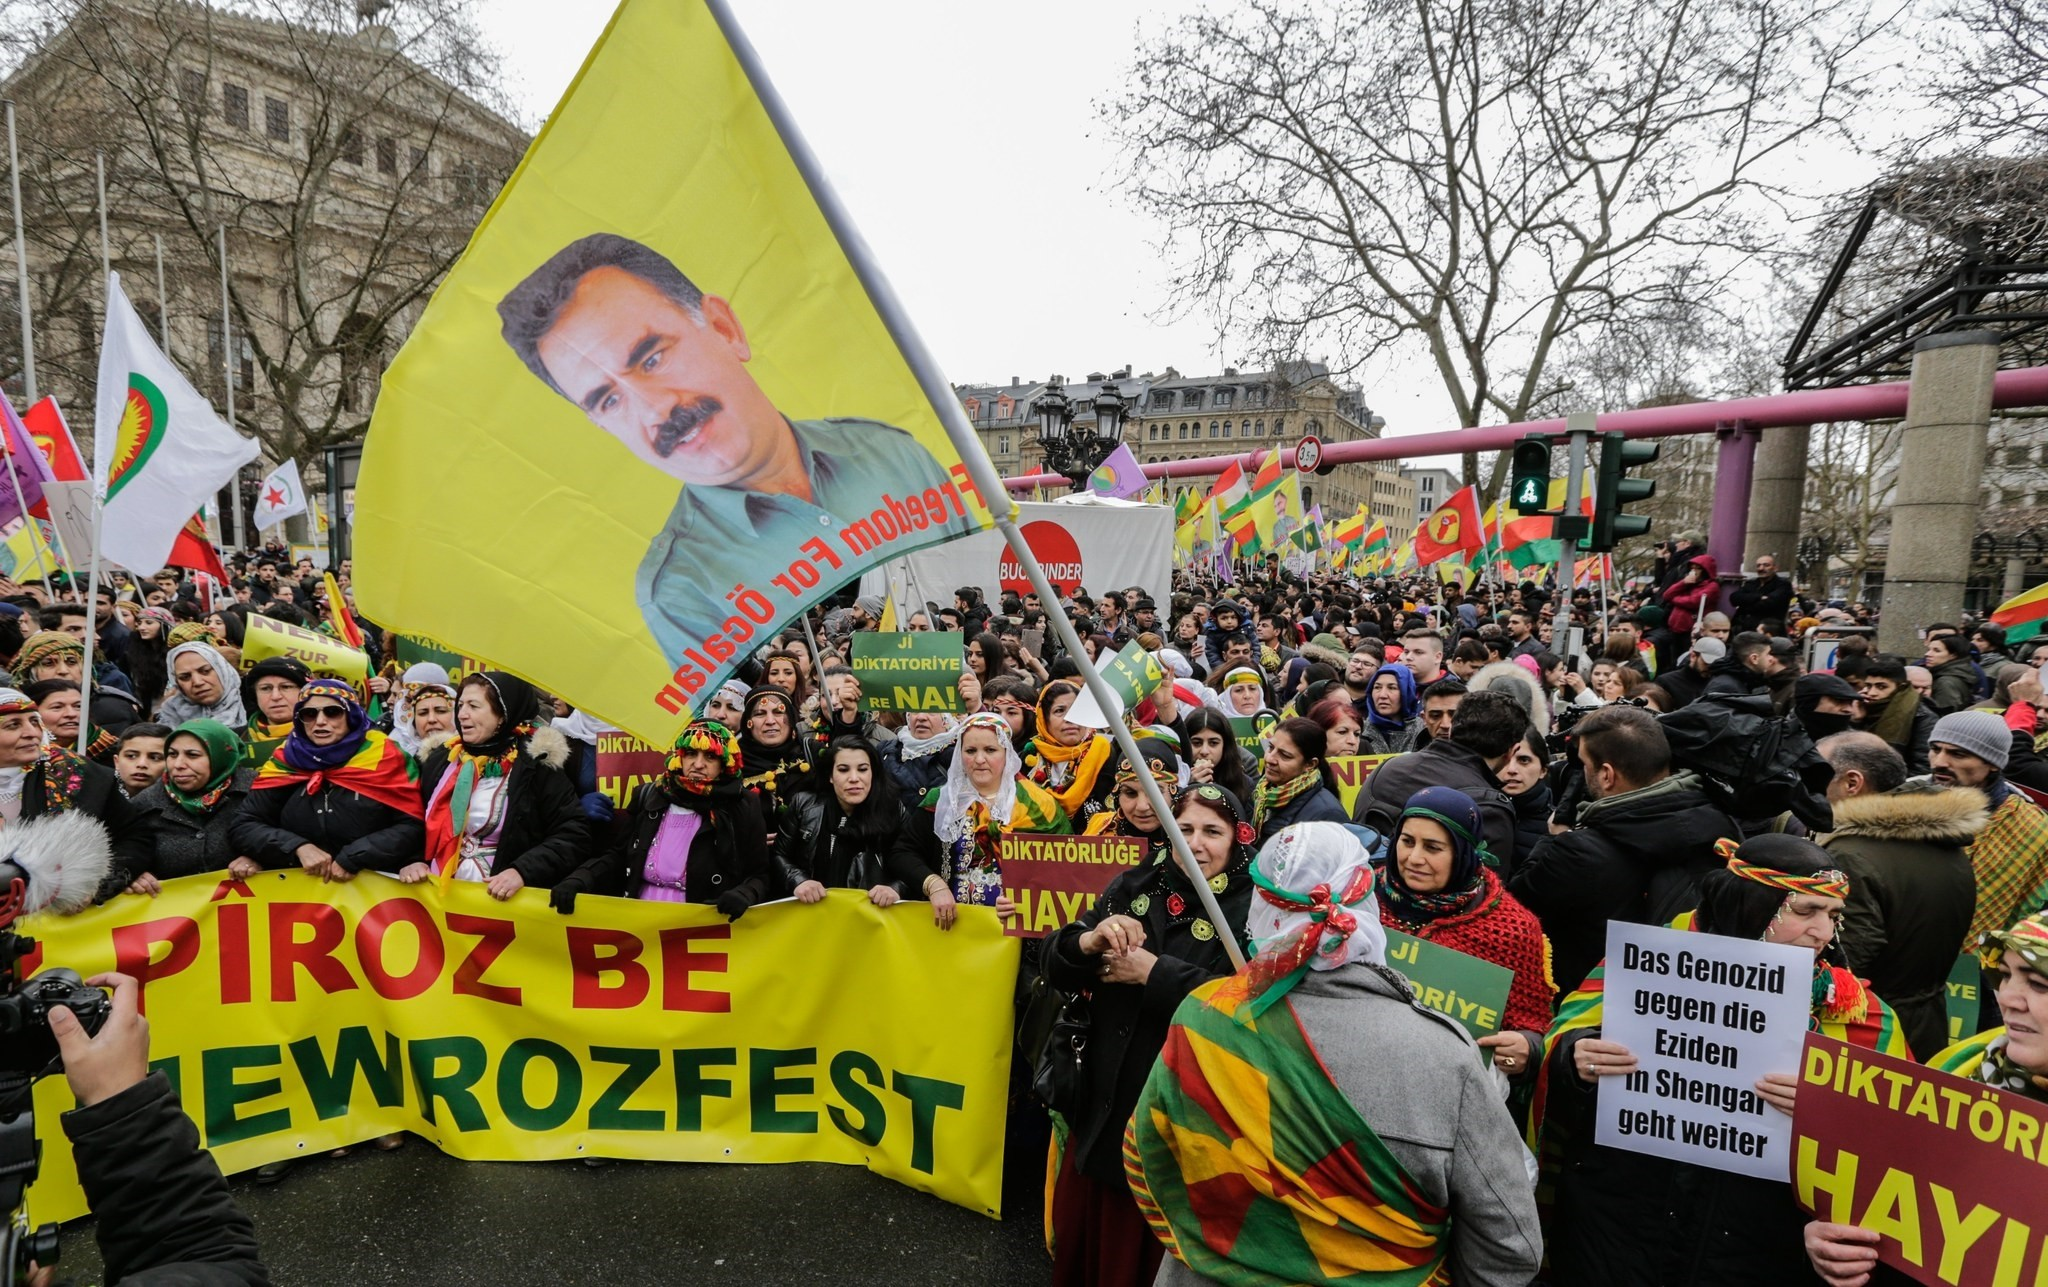 PKK followers carry a flag with a picture of terrorist groupu2019s leader and other banned posters and flags in Frankfurt, Germany. (EPA Photo)